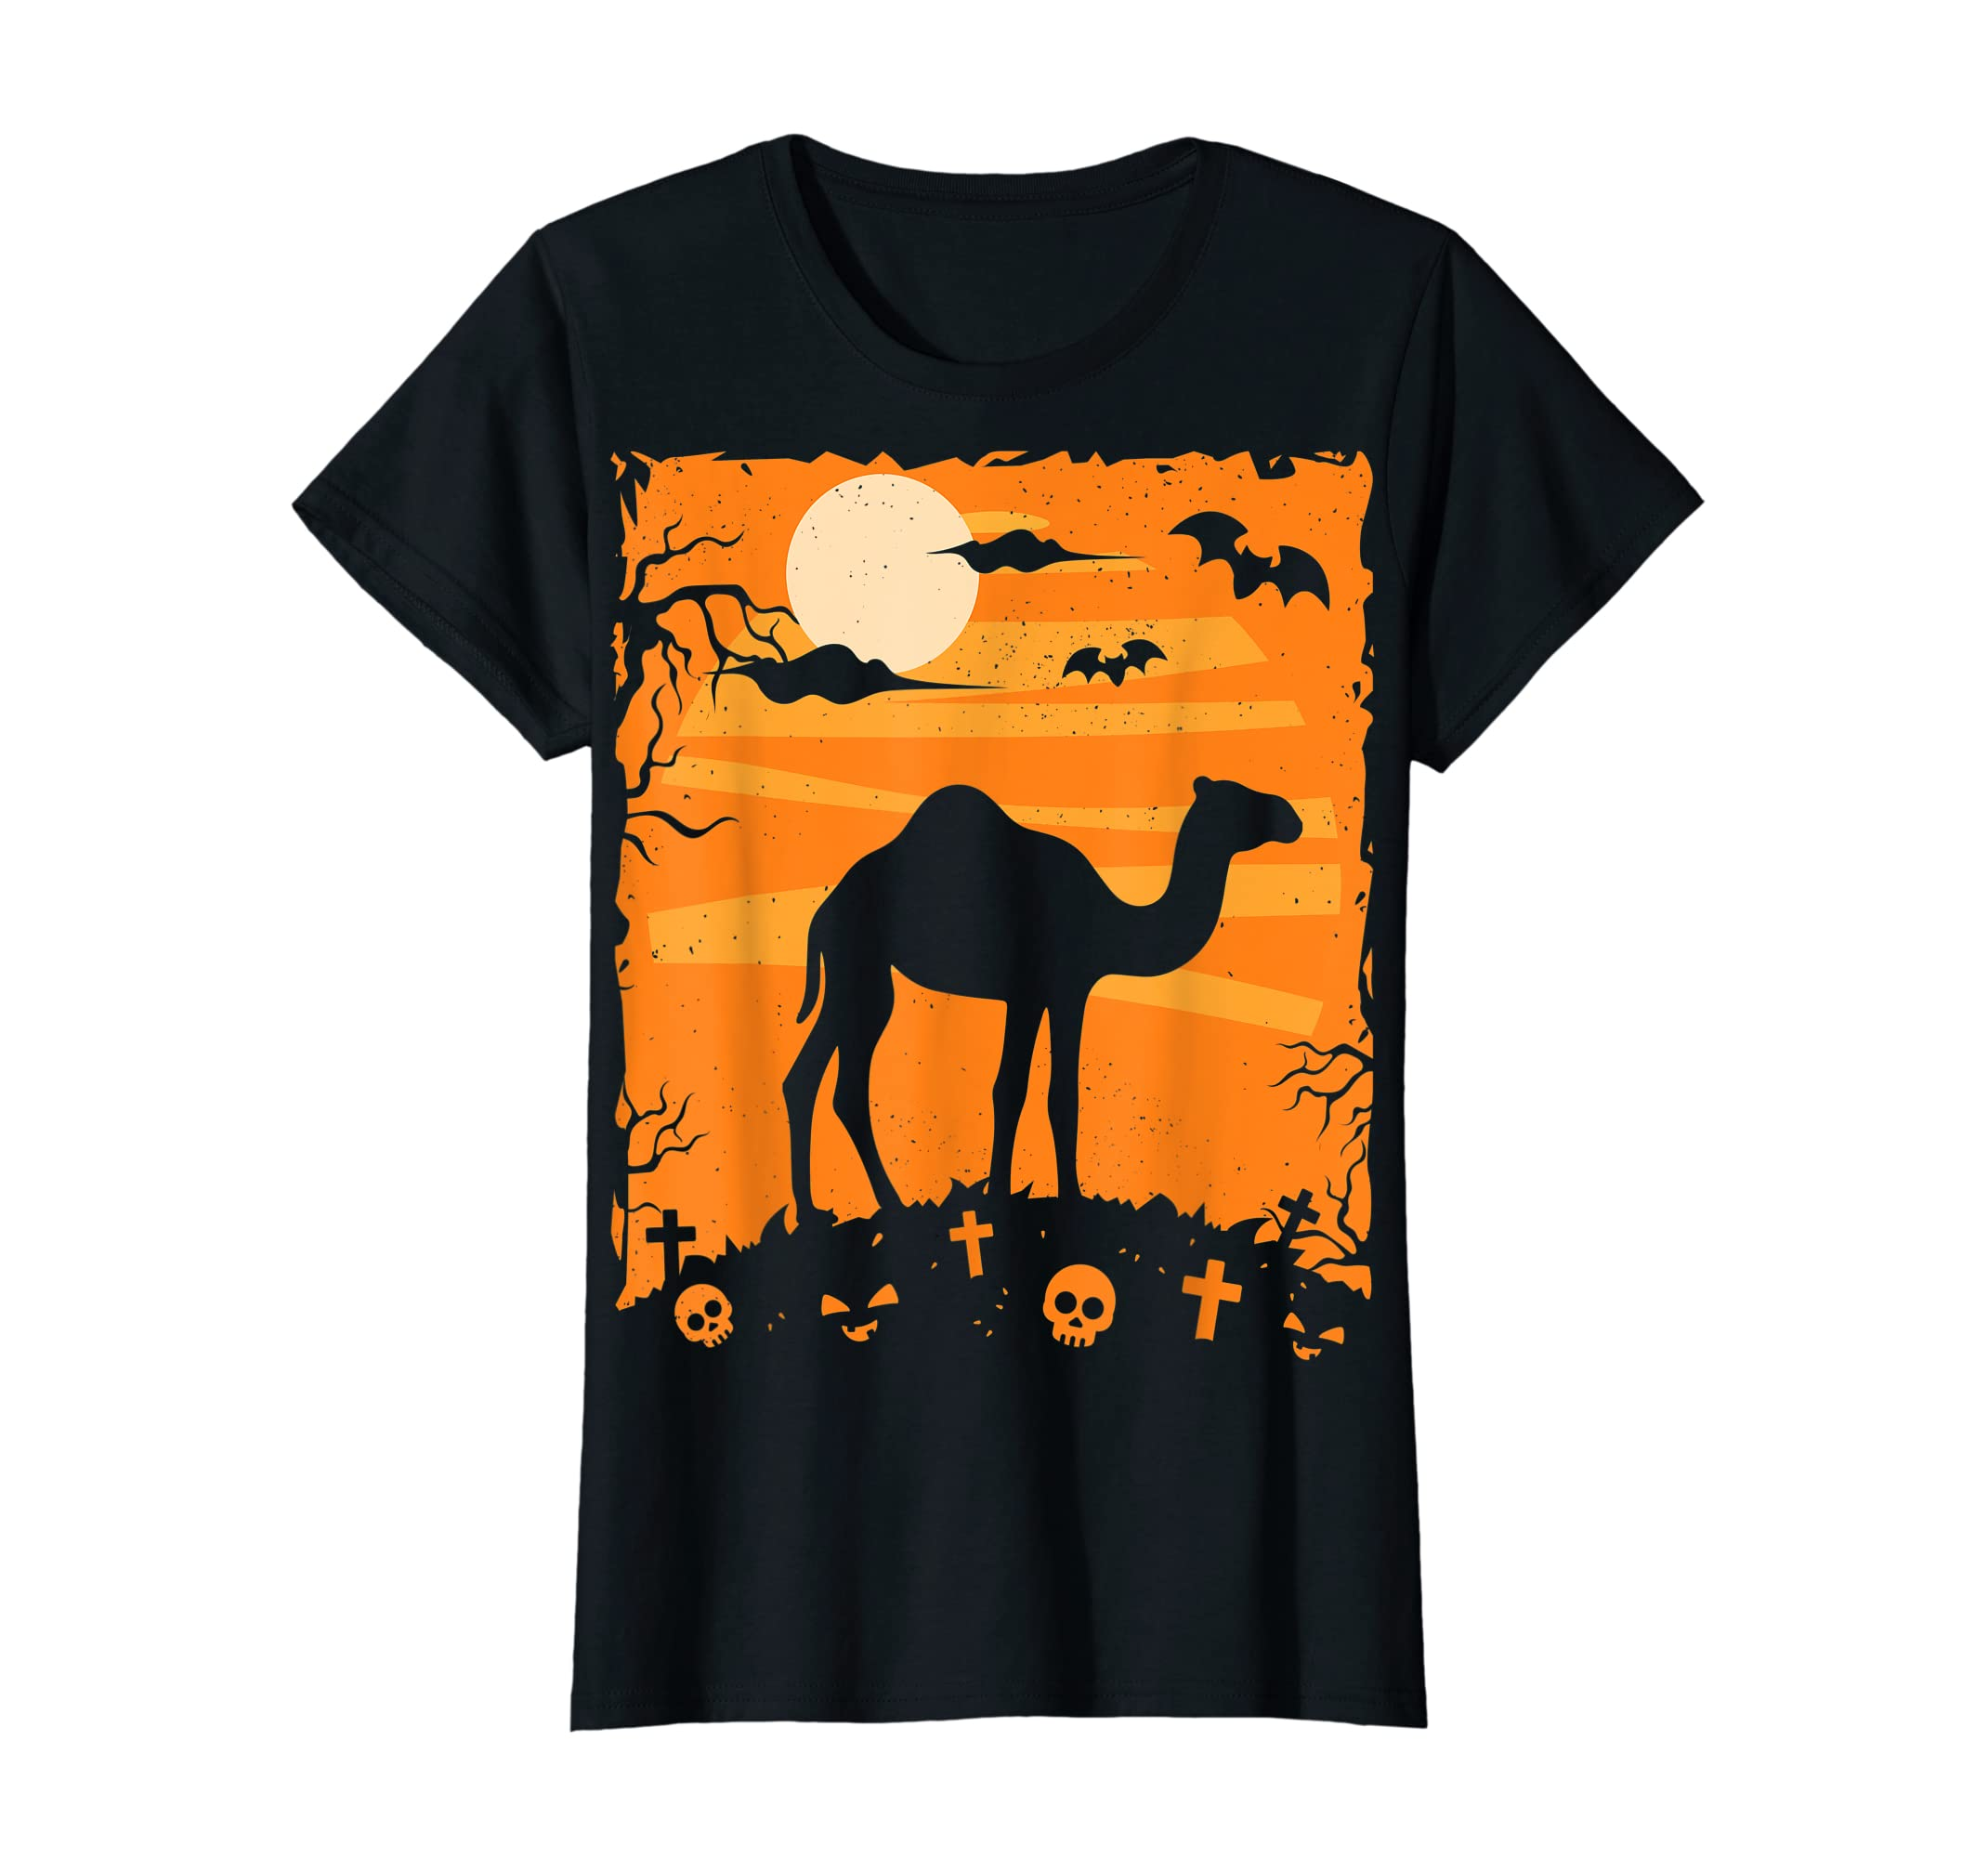 Camel Halloween Costume Animal Funny Pumpkin Outfit Gift T-Shirt-Women's T-Shirt-Black